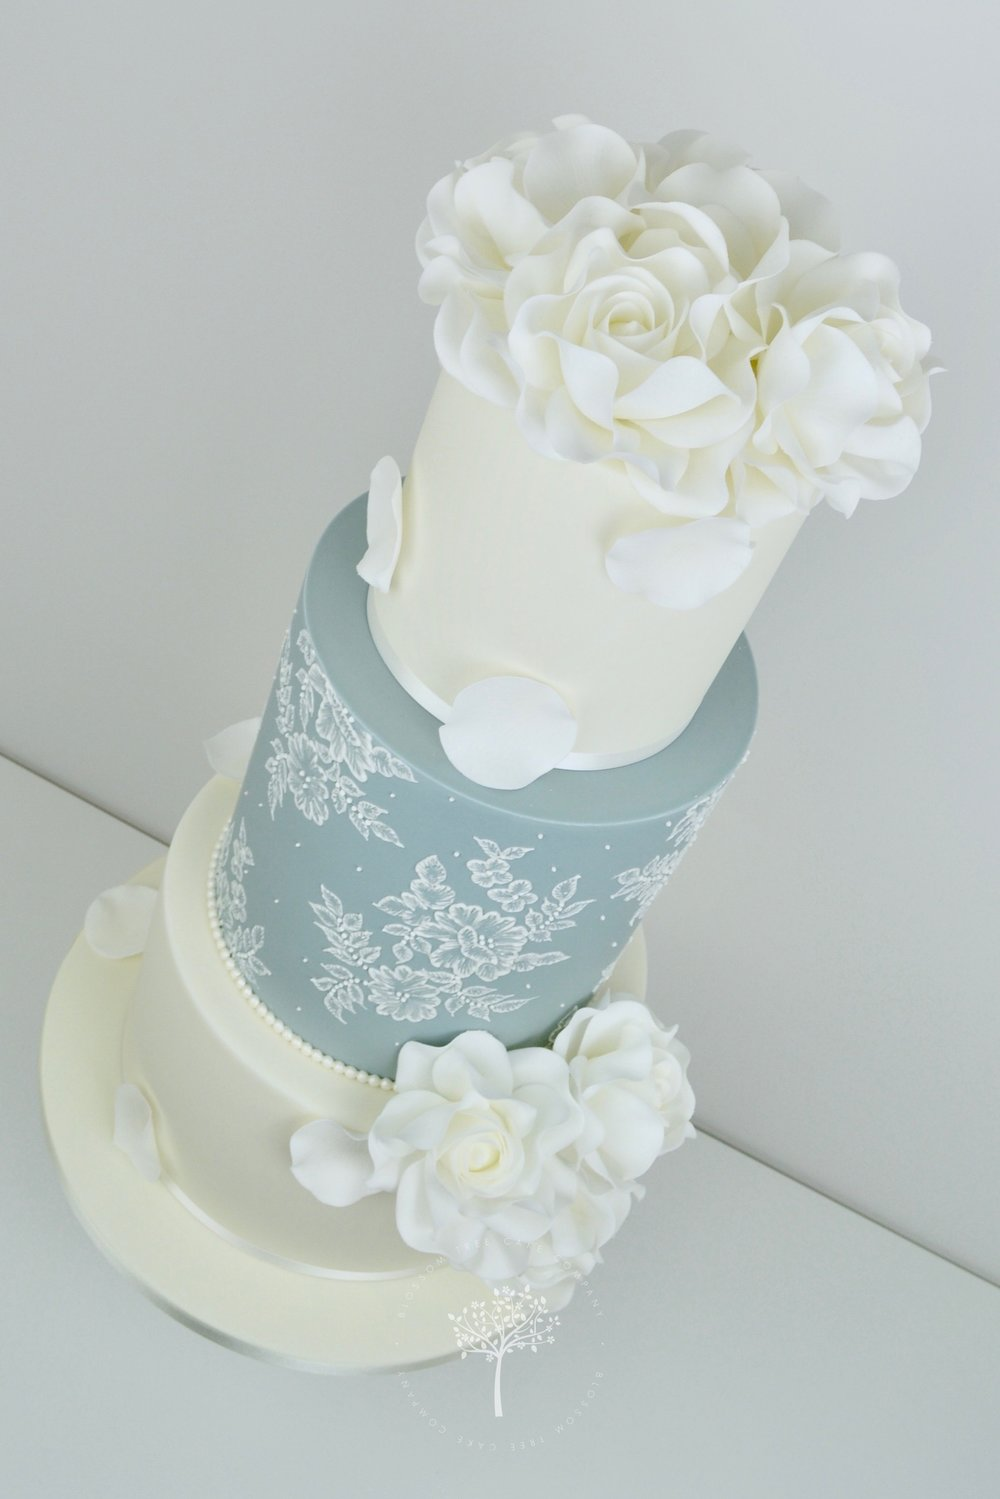 White Roses and Lace wedding cake by Blossom Tree Cake Company Harrogate North Yorkshire - angle.jpg